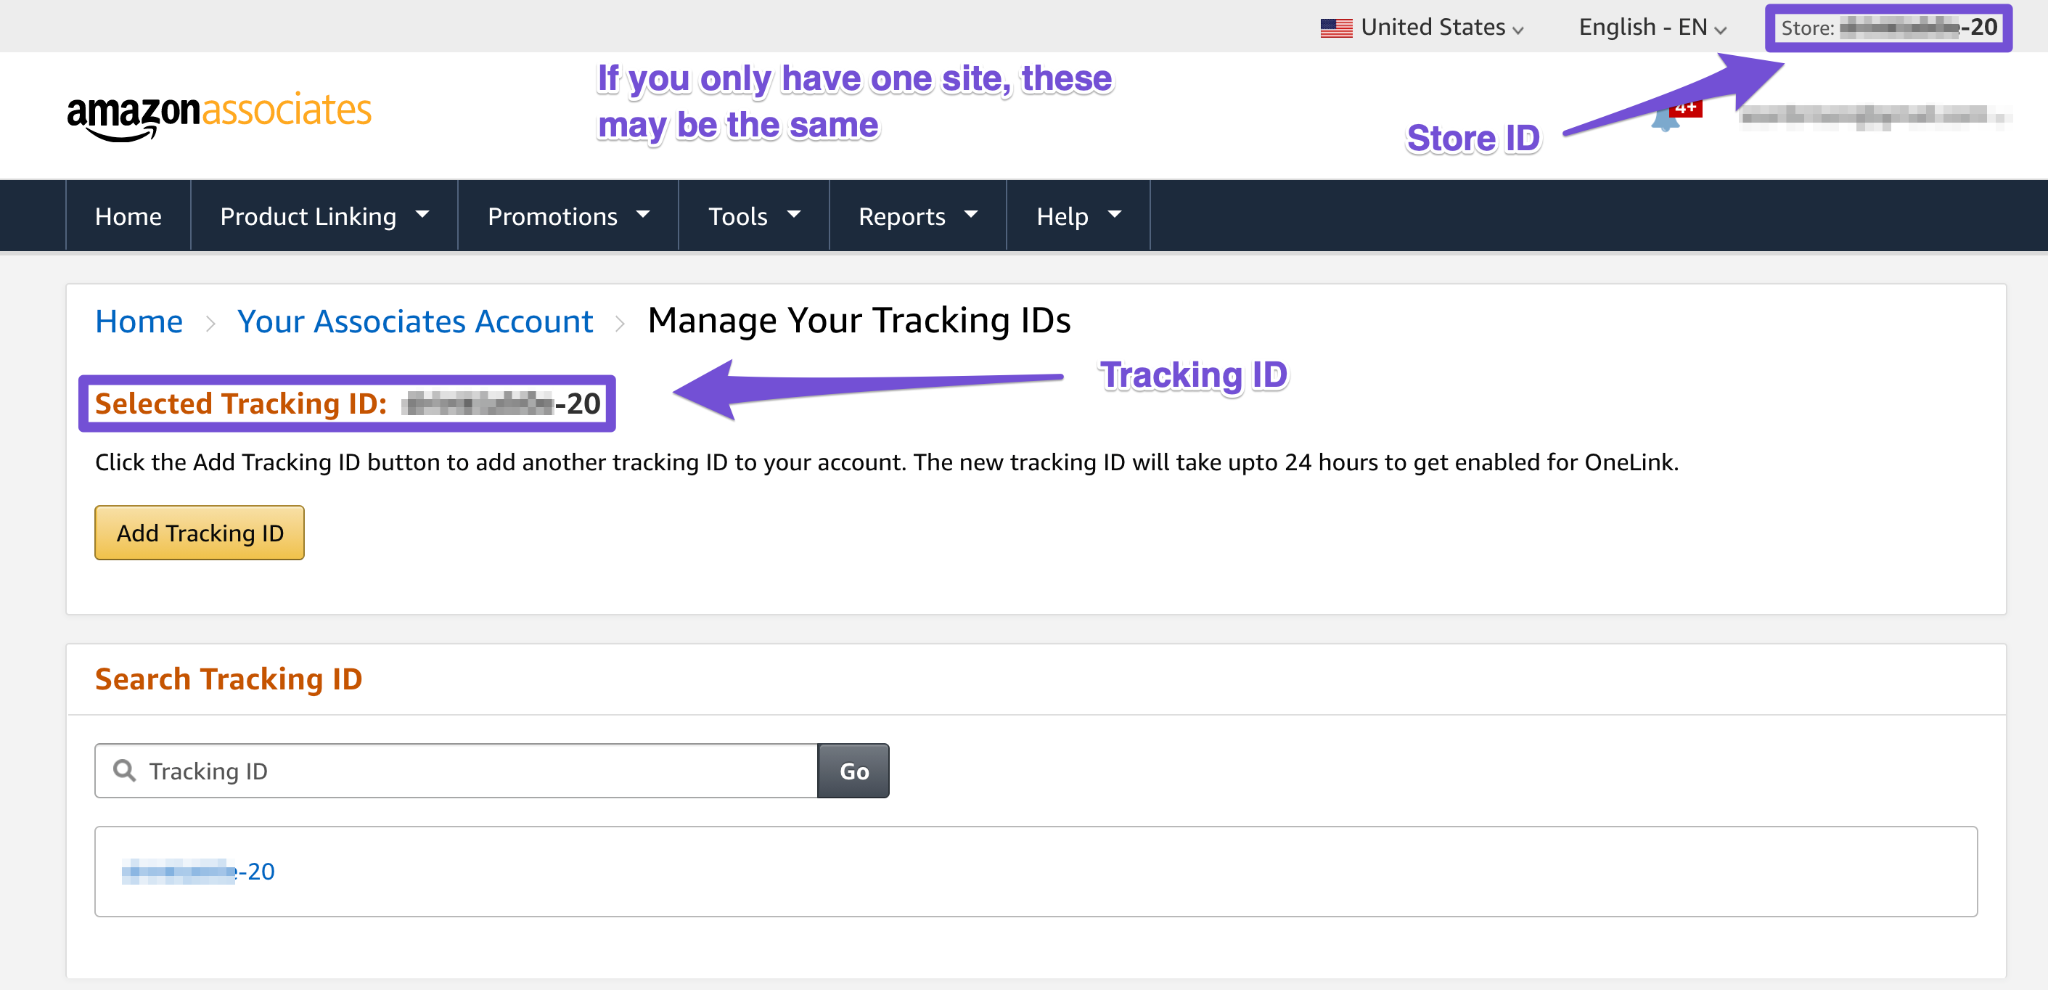 amazon tracking id and store id